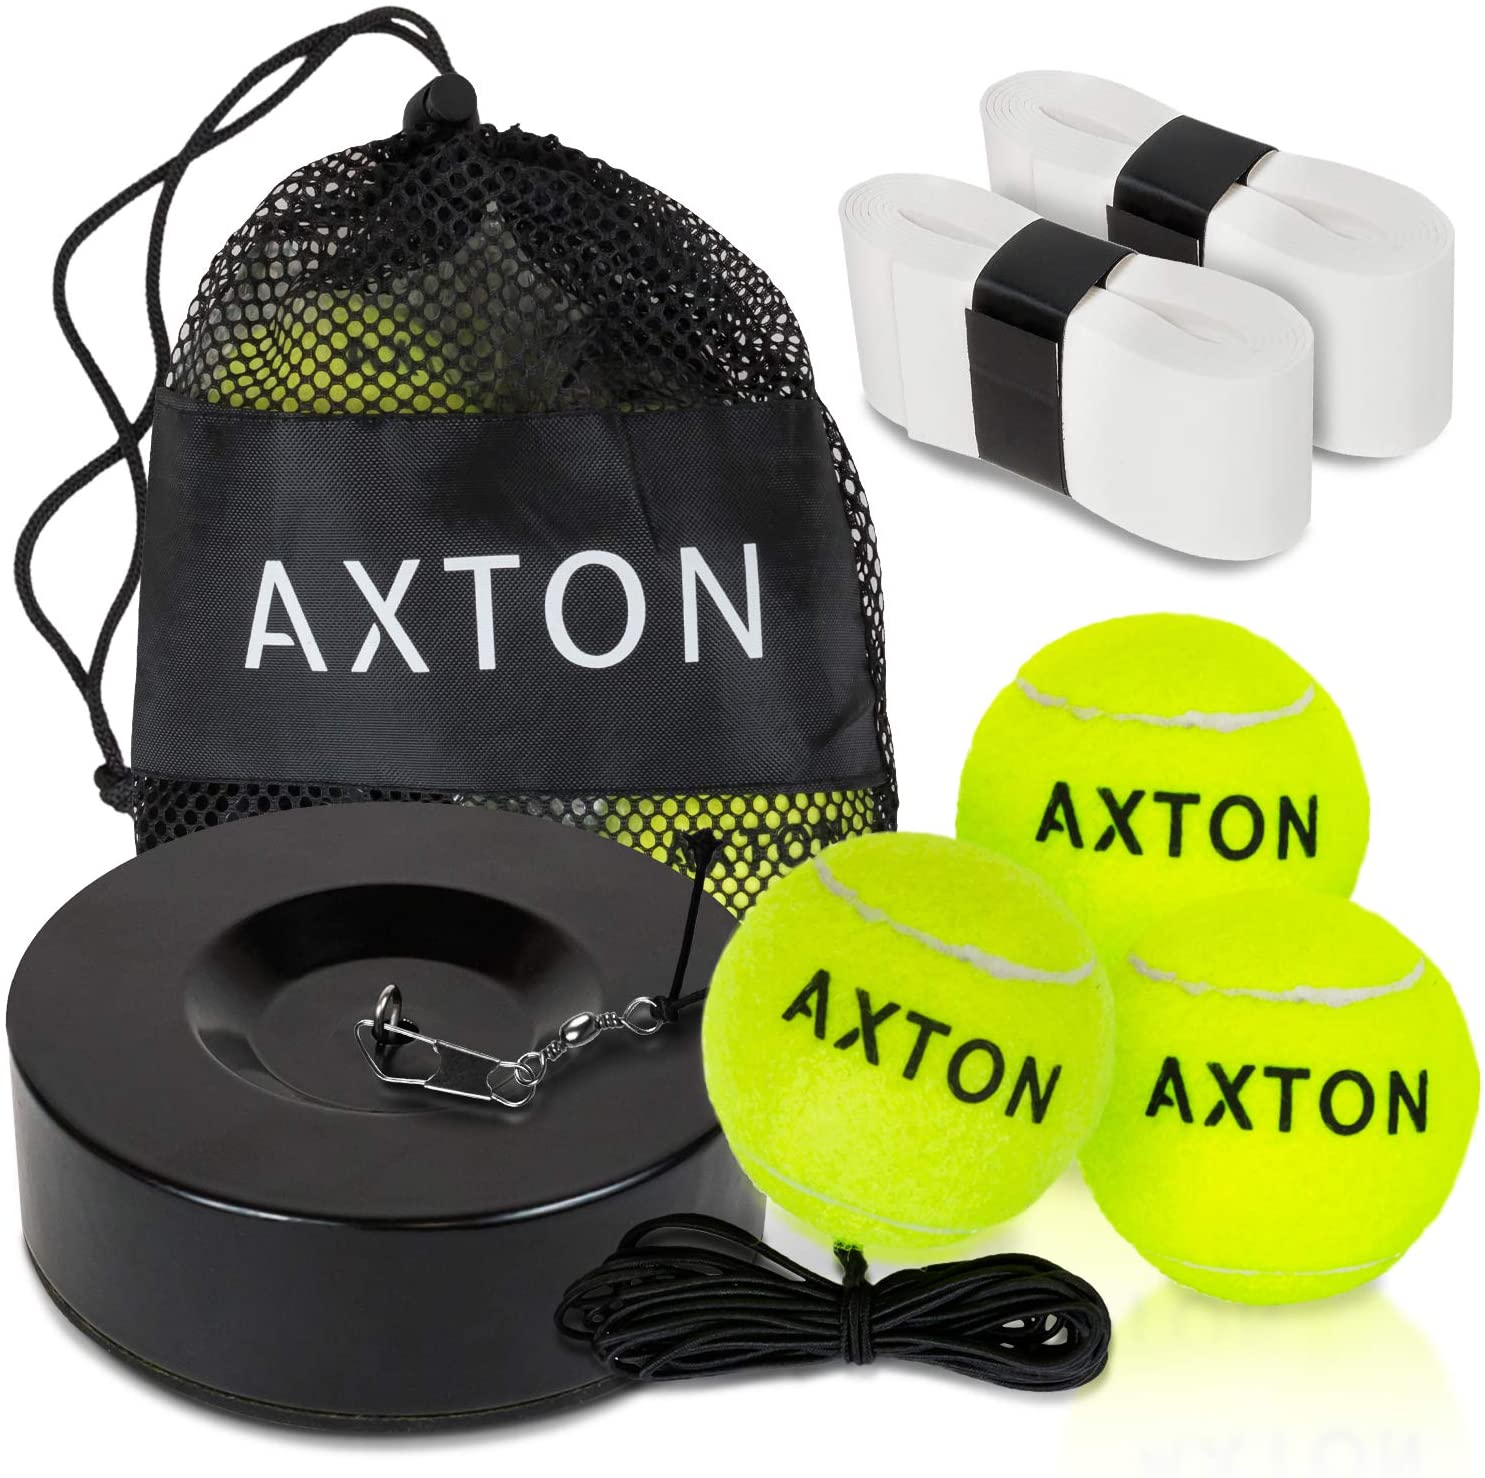 AXTON Solo Tennis Trainer Rebound Ball - Tennis Rebounder with 3 Tennis Balls - Tennis Trainer Ball with String - Tennis Ball Rebounder - Tennis Practice Equipment and Comes with Bonus Overgrips